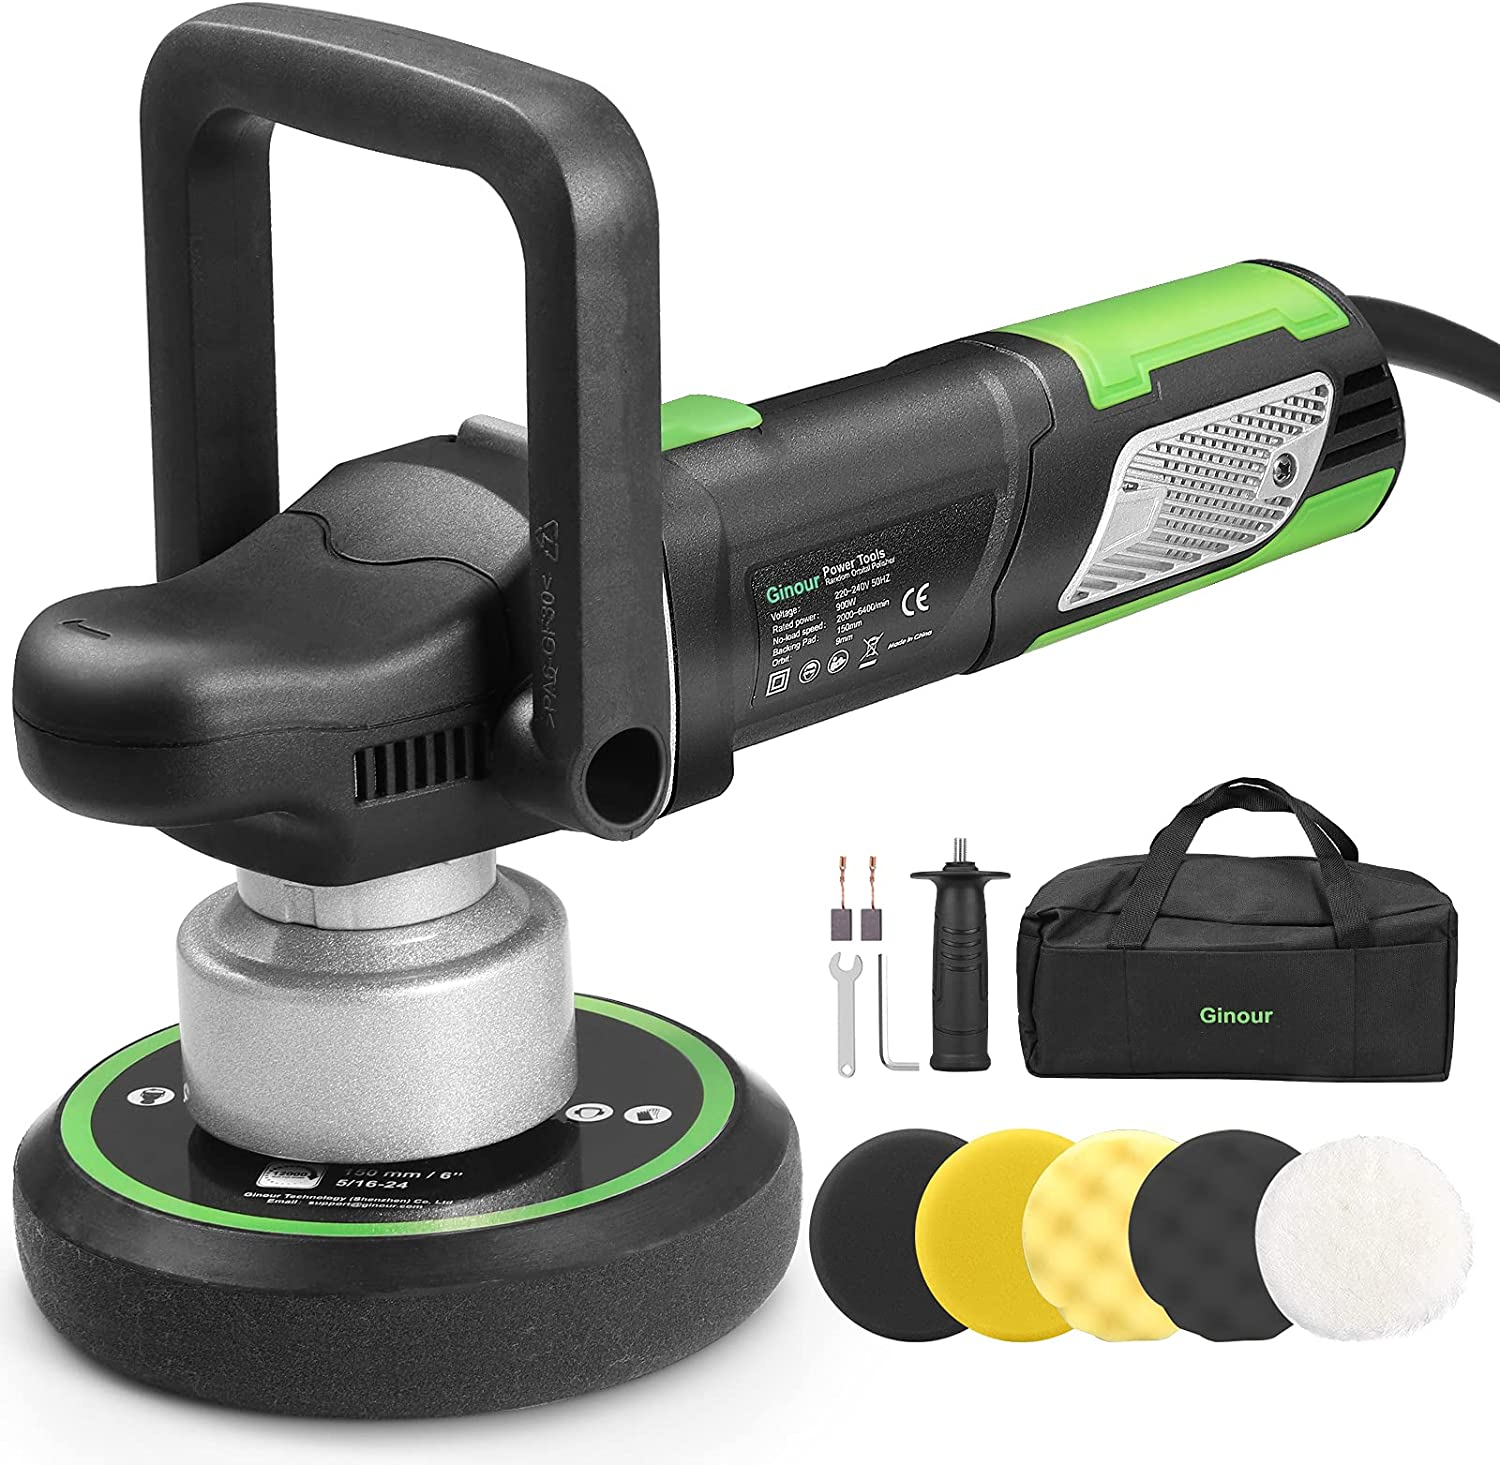 Ginour Polisher All items in Some reservation the store 900W 6-inch Variable O Random Speed Dual-Action